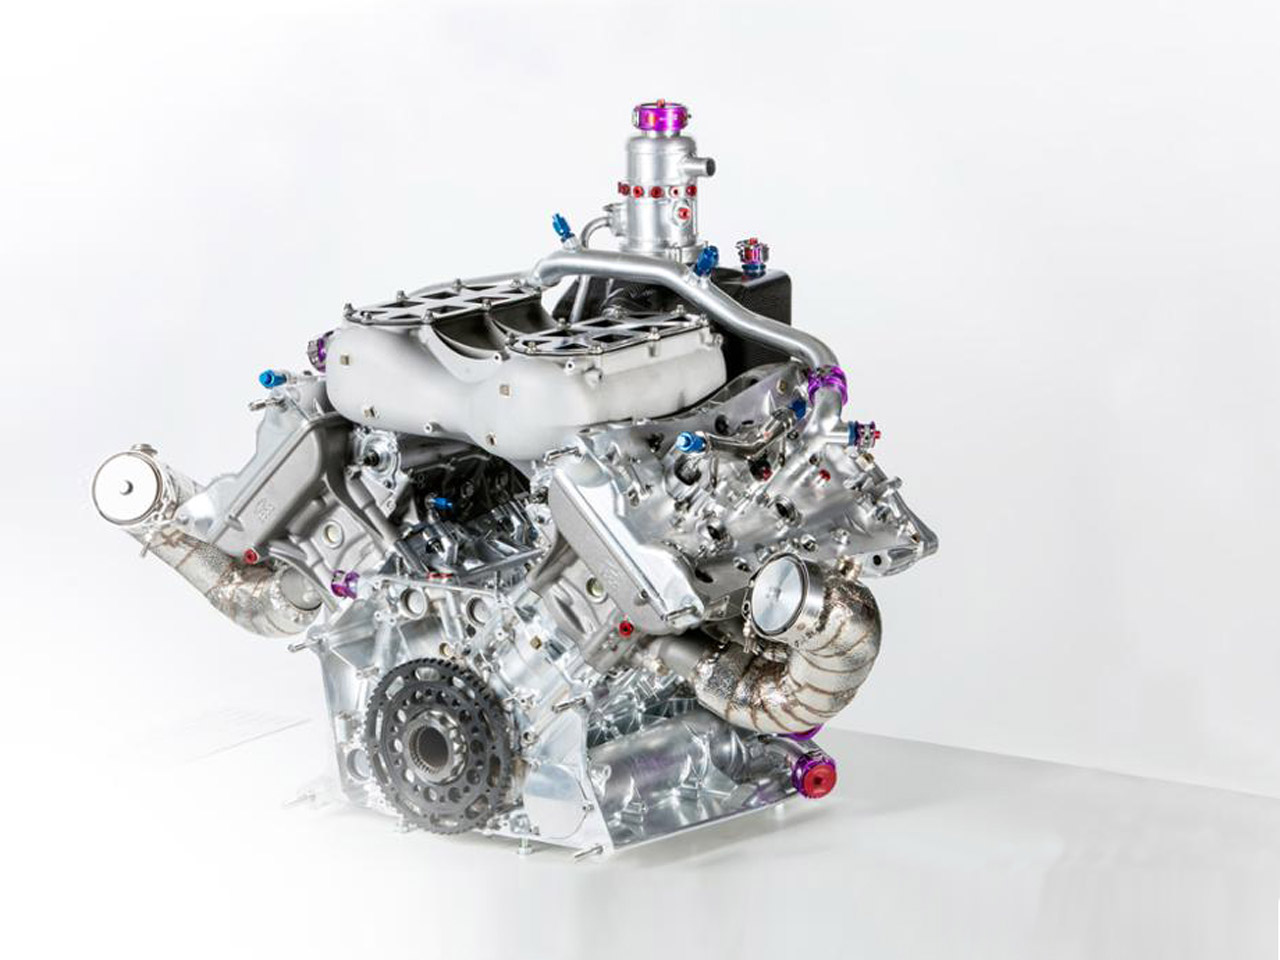 Porsche World champion turbo four-cylinder: innovative power pack and a trendsetter